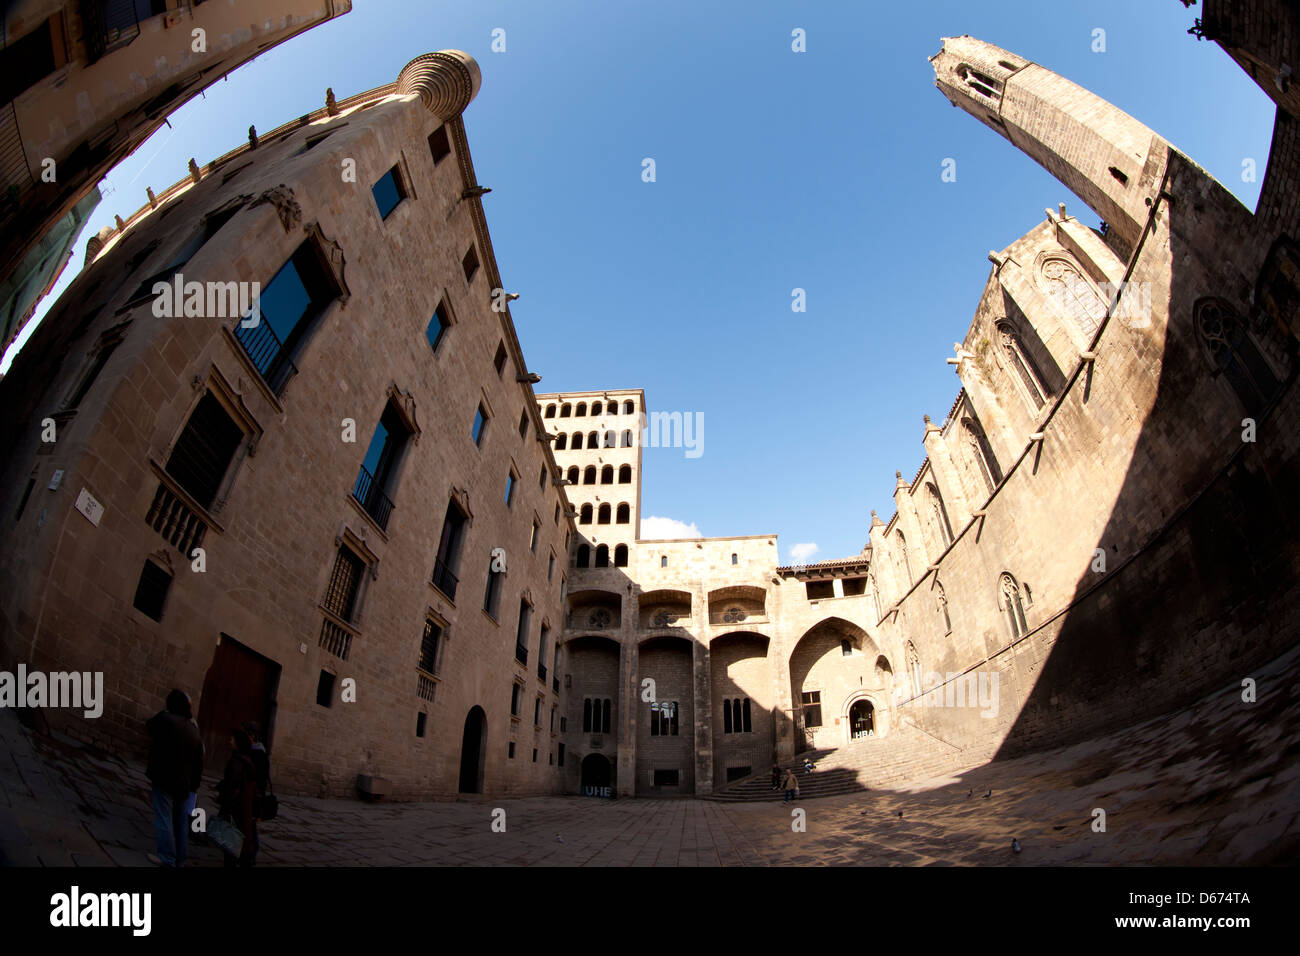 Plaça del Rei - King's square - in Barcelona town center, Barcelona, Spain - Stock Image